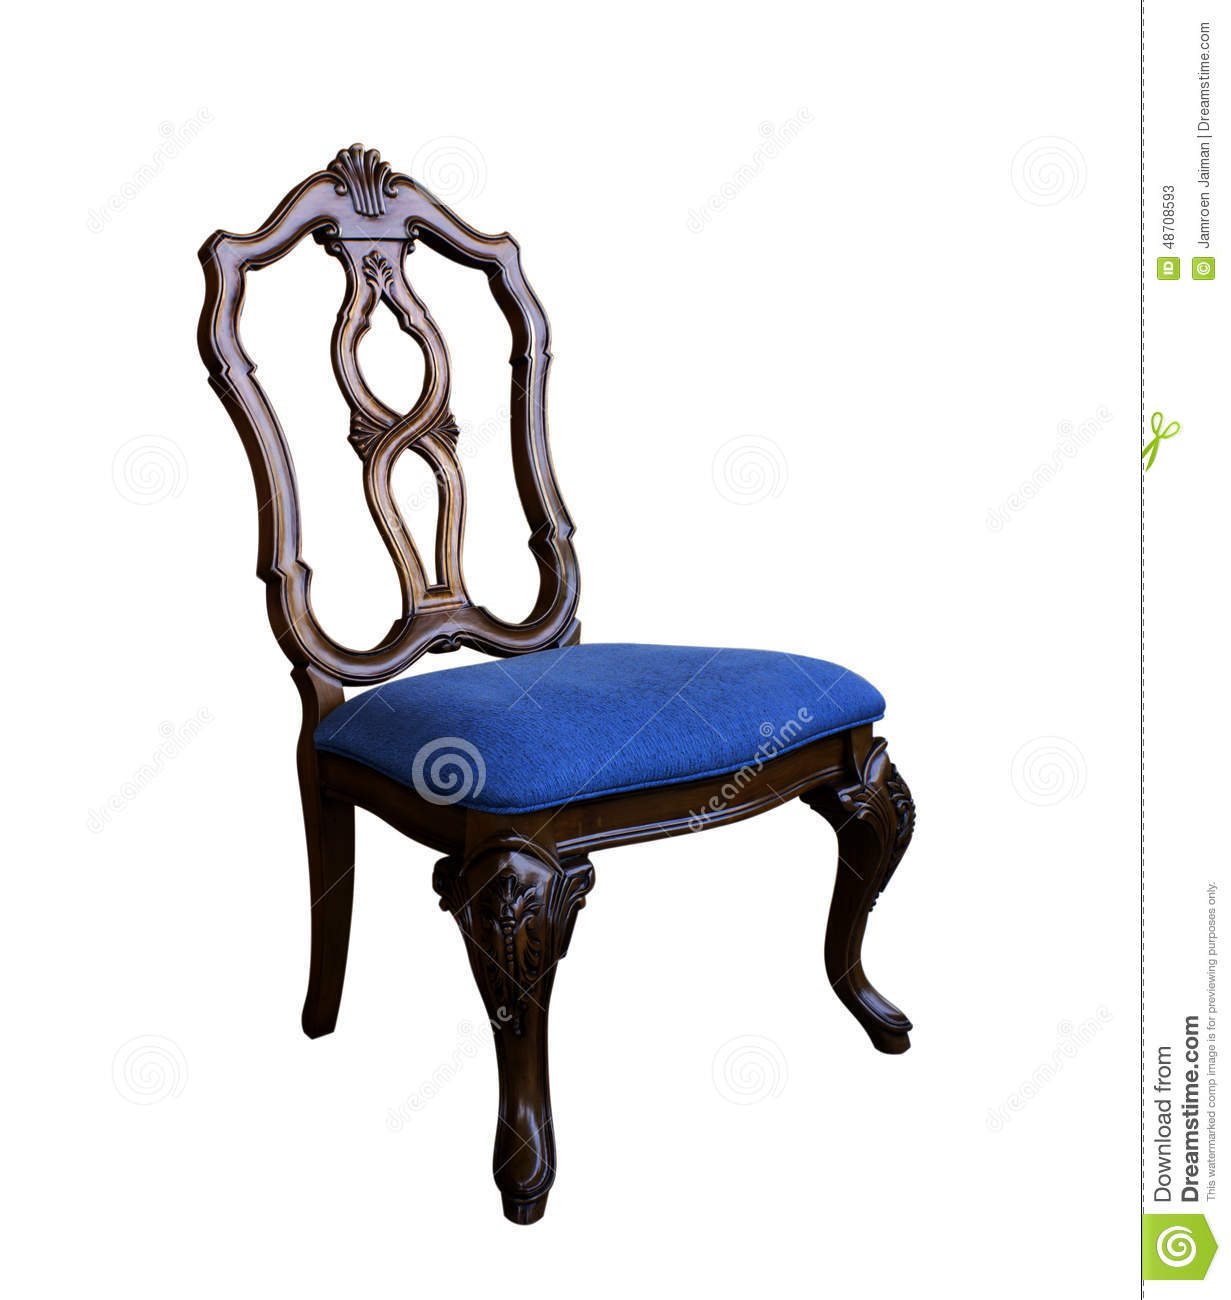 Exceptionnel Antique Chair With Cushion Isolated With Clipping Path